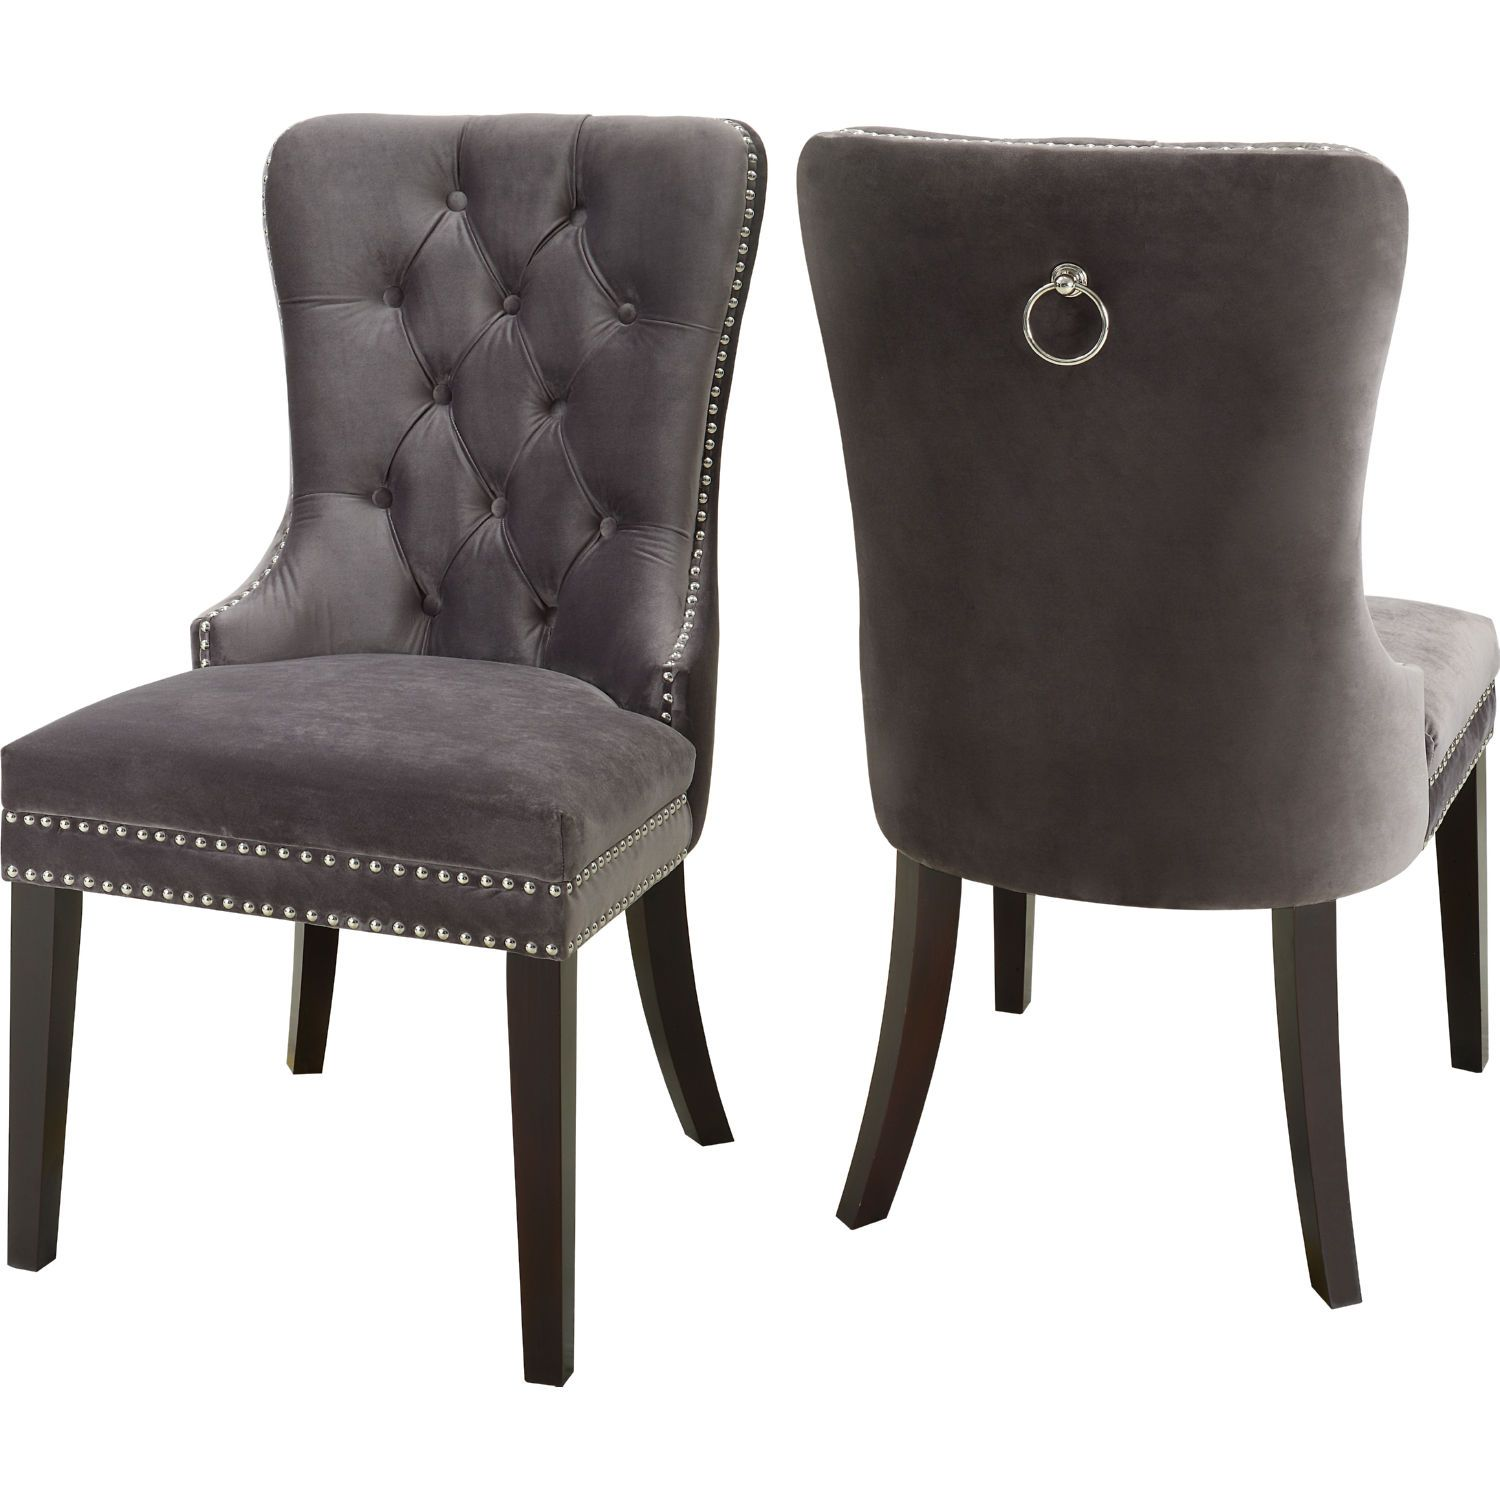 Meridian Furniture 740grey C Nikki Dining Chair Tufted Grey Velvet